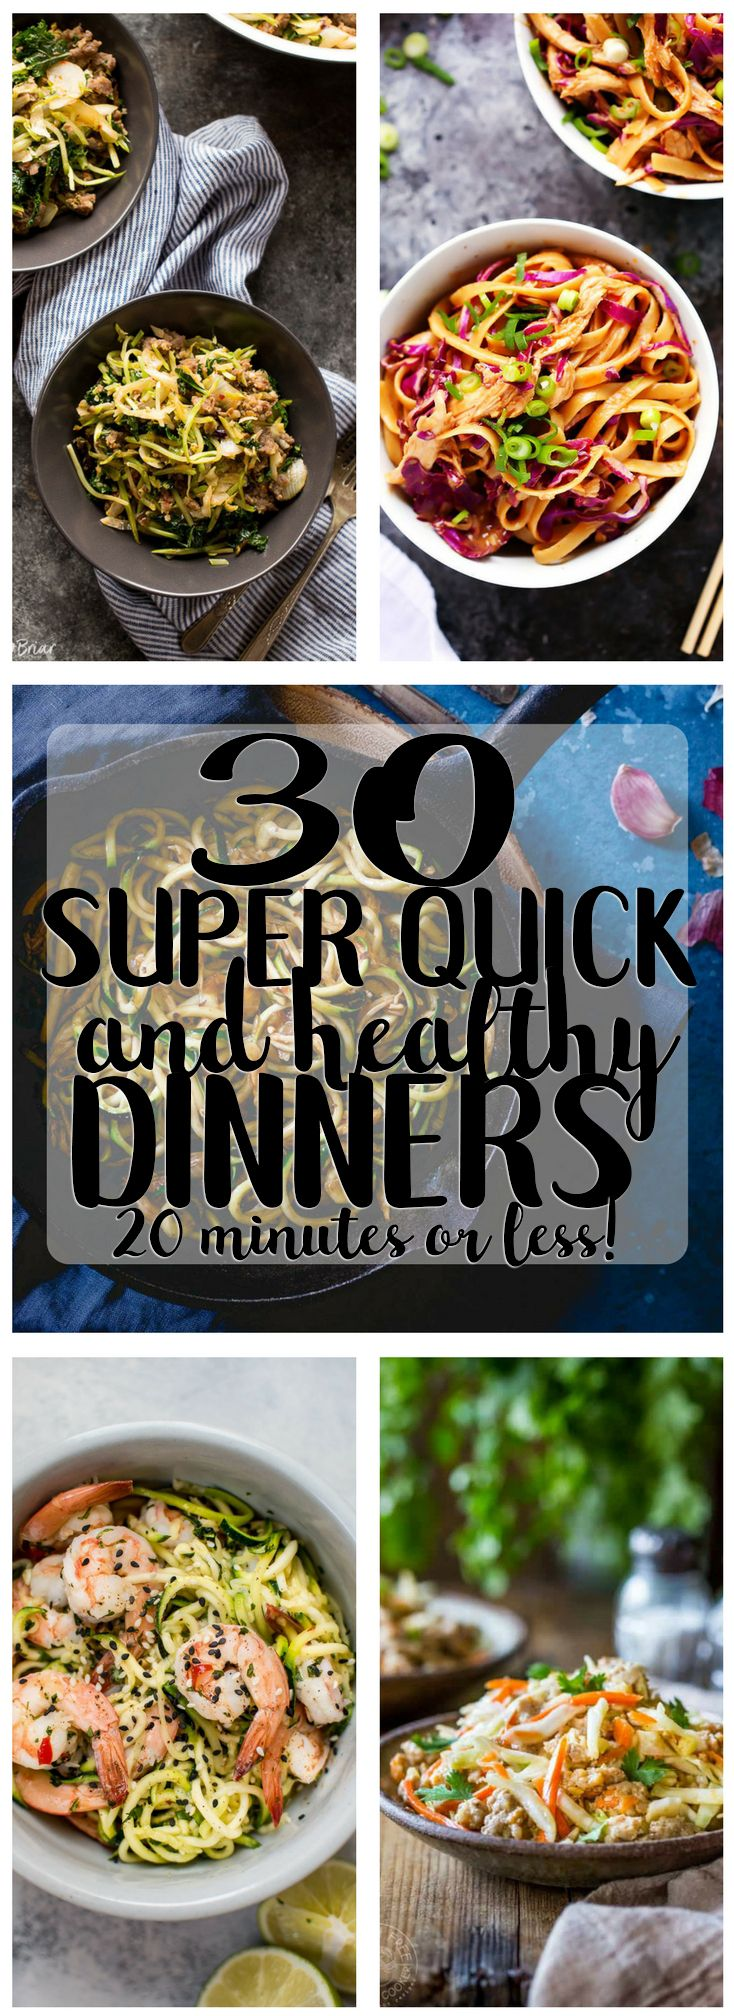 30 Quick and Healthy Dinner Recipes that take 20 m…Edit description